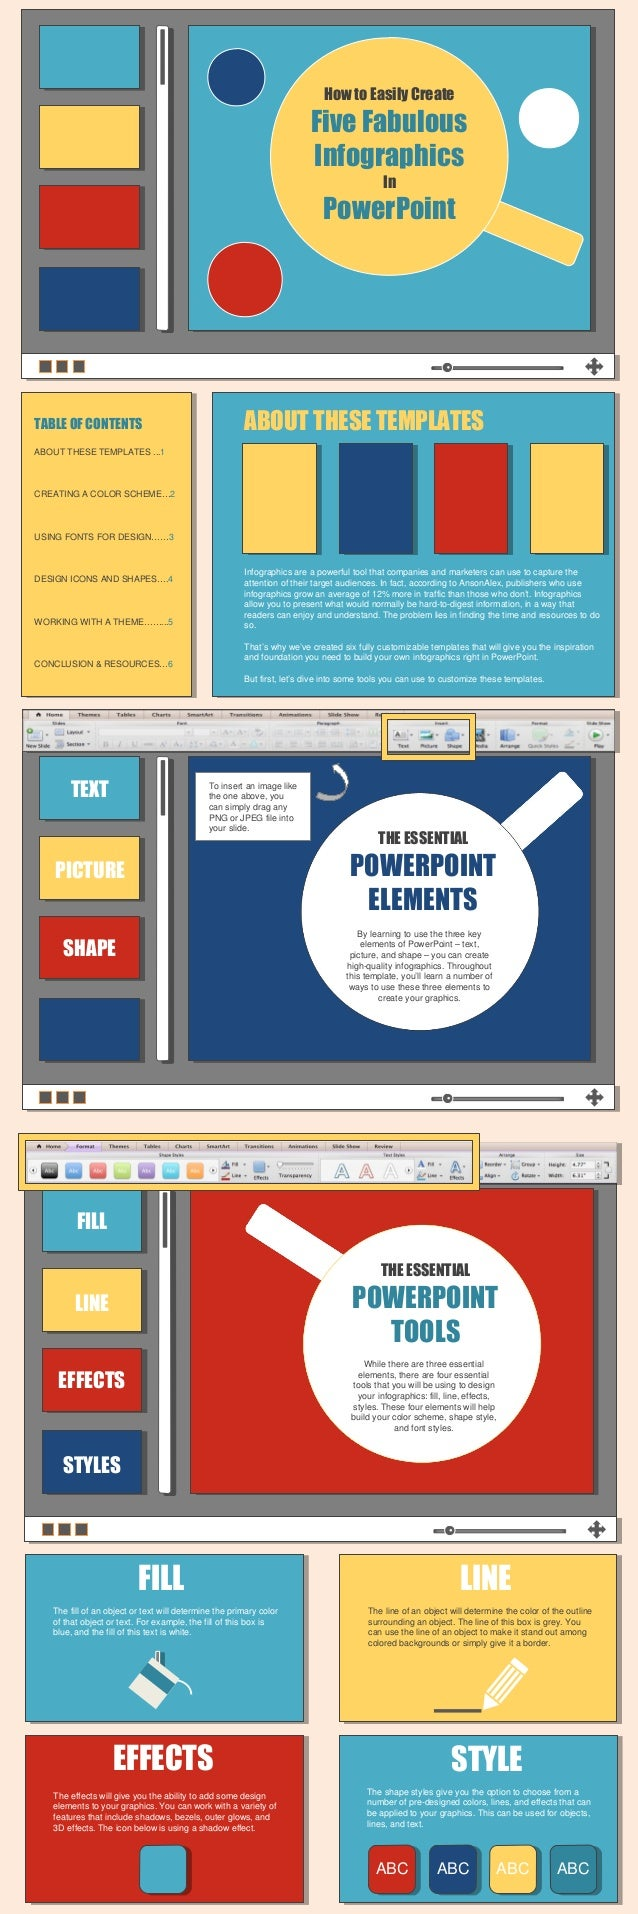 How to create 5 fabulous infographics using PowerPoint